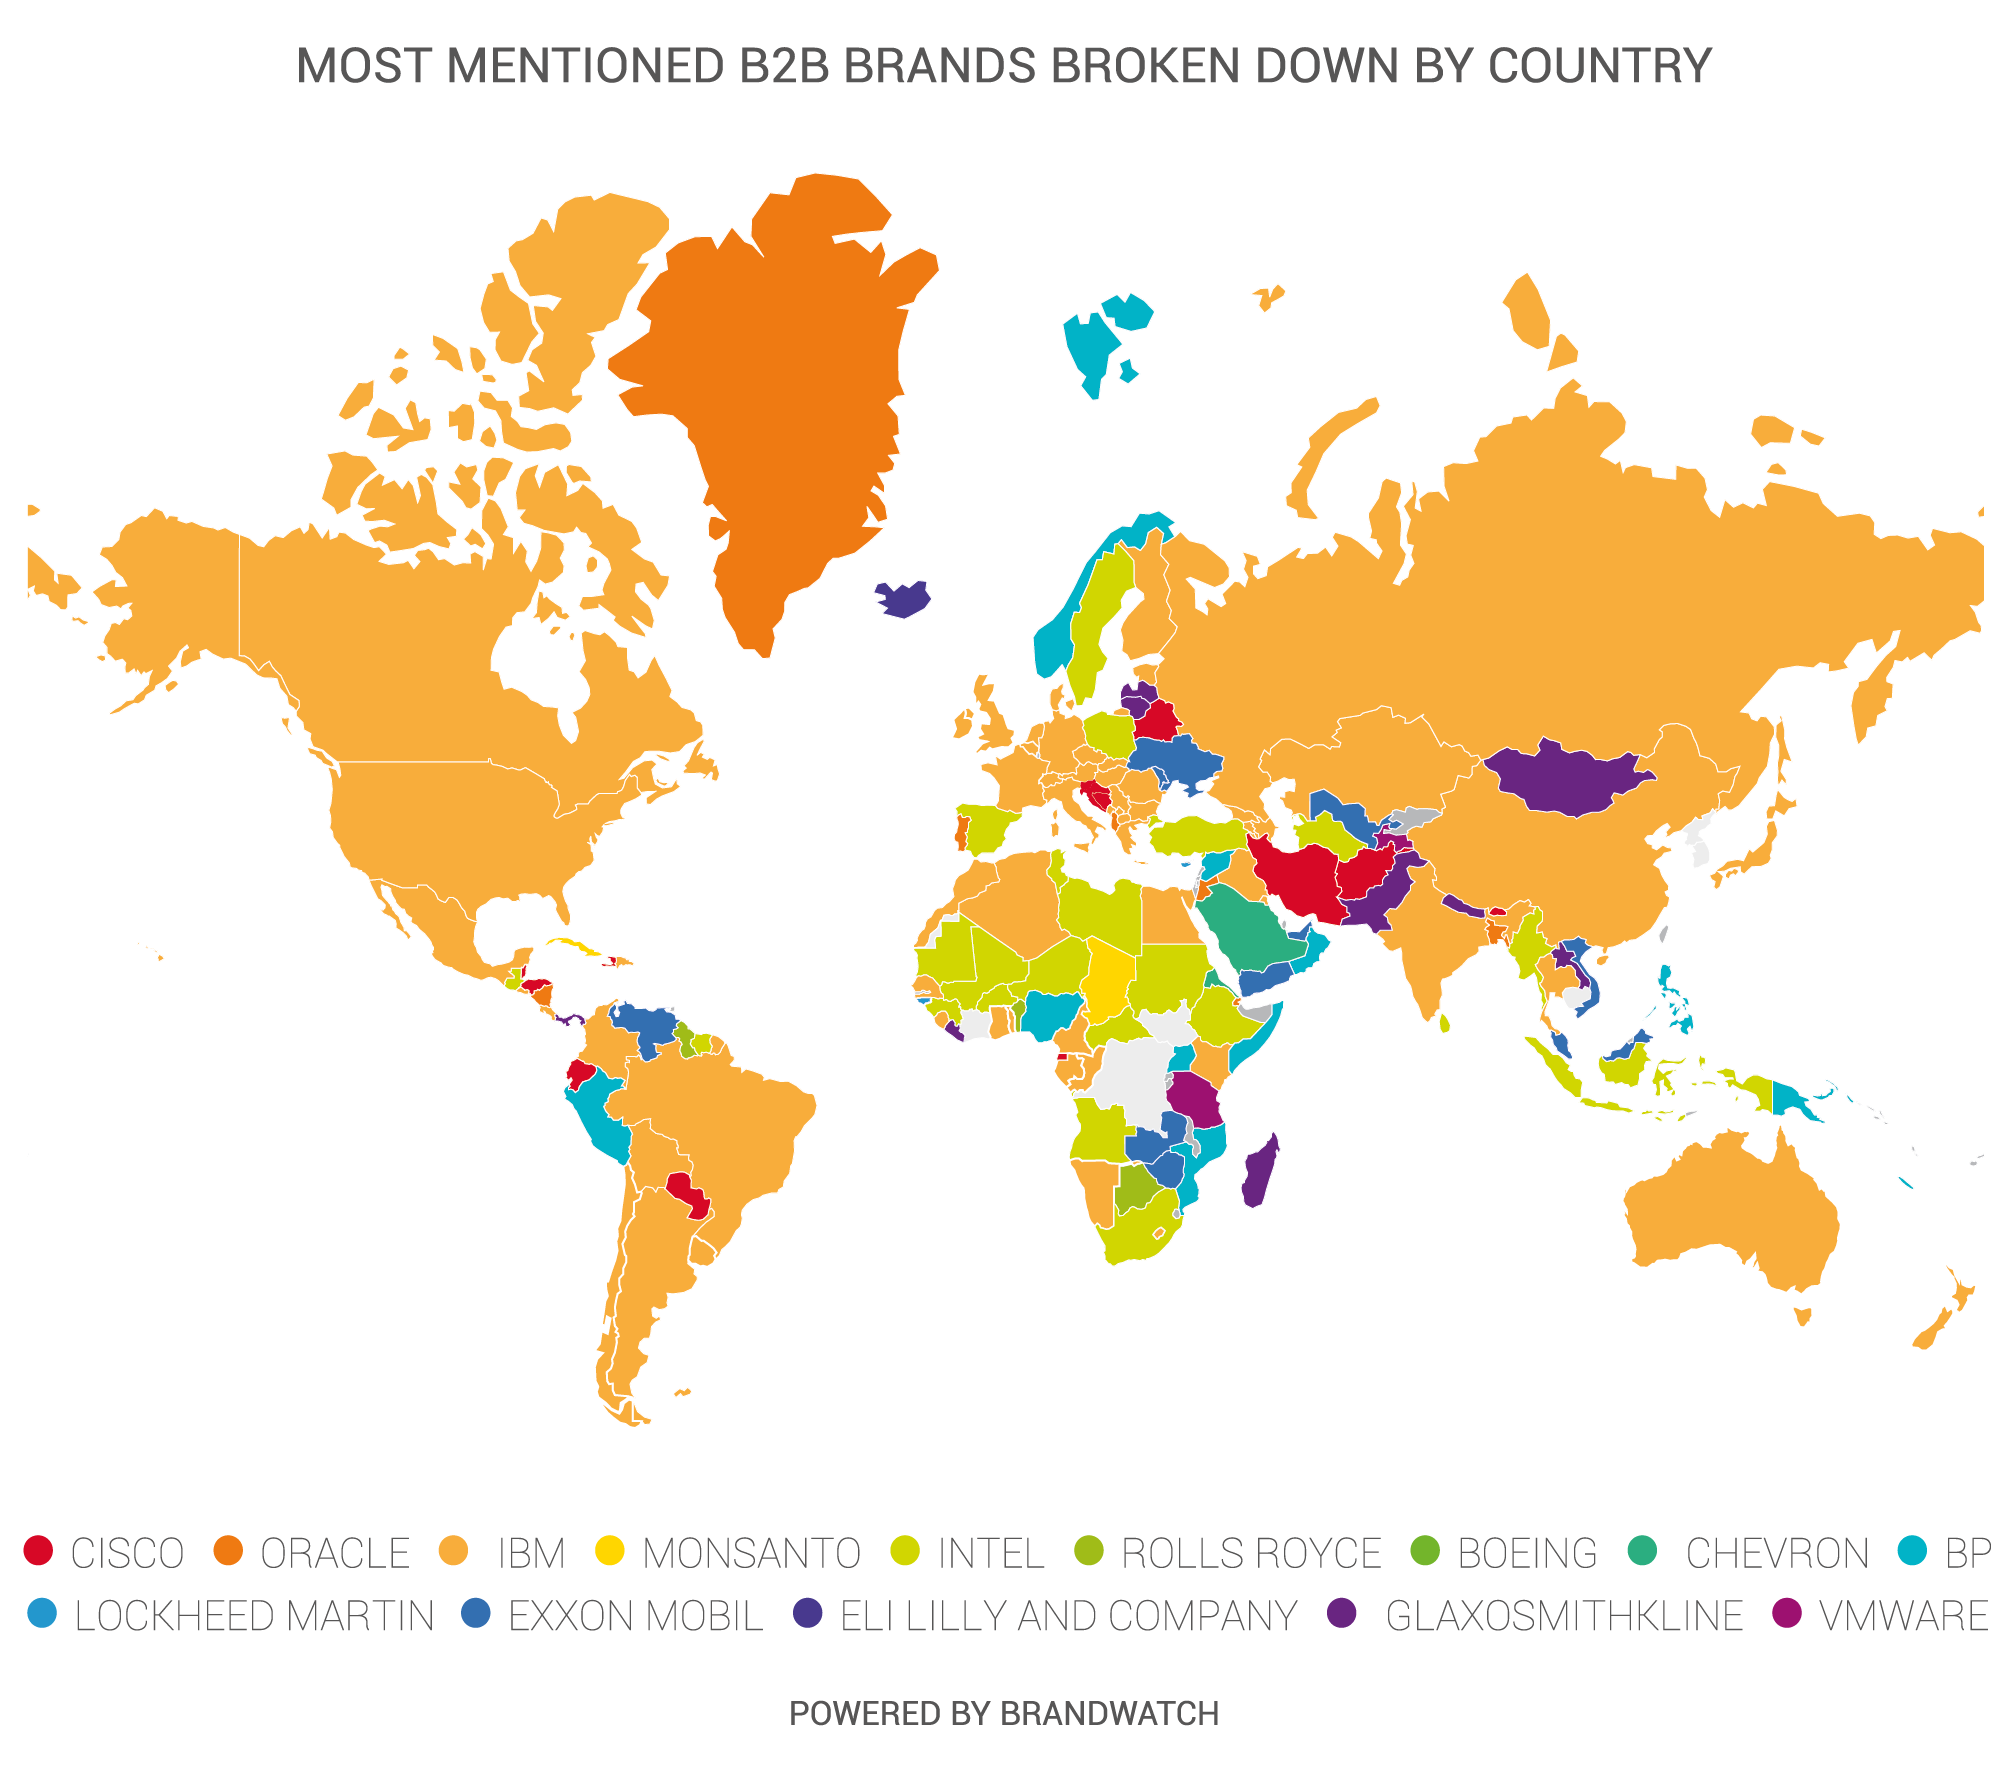 Most Mentioned B2B Brands on Social Media by Country